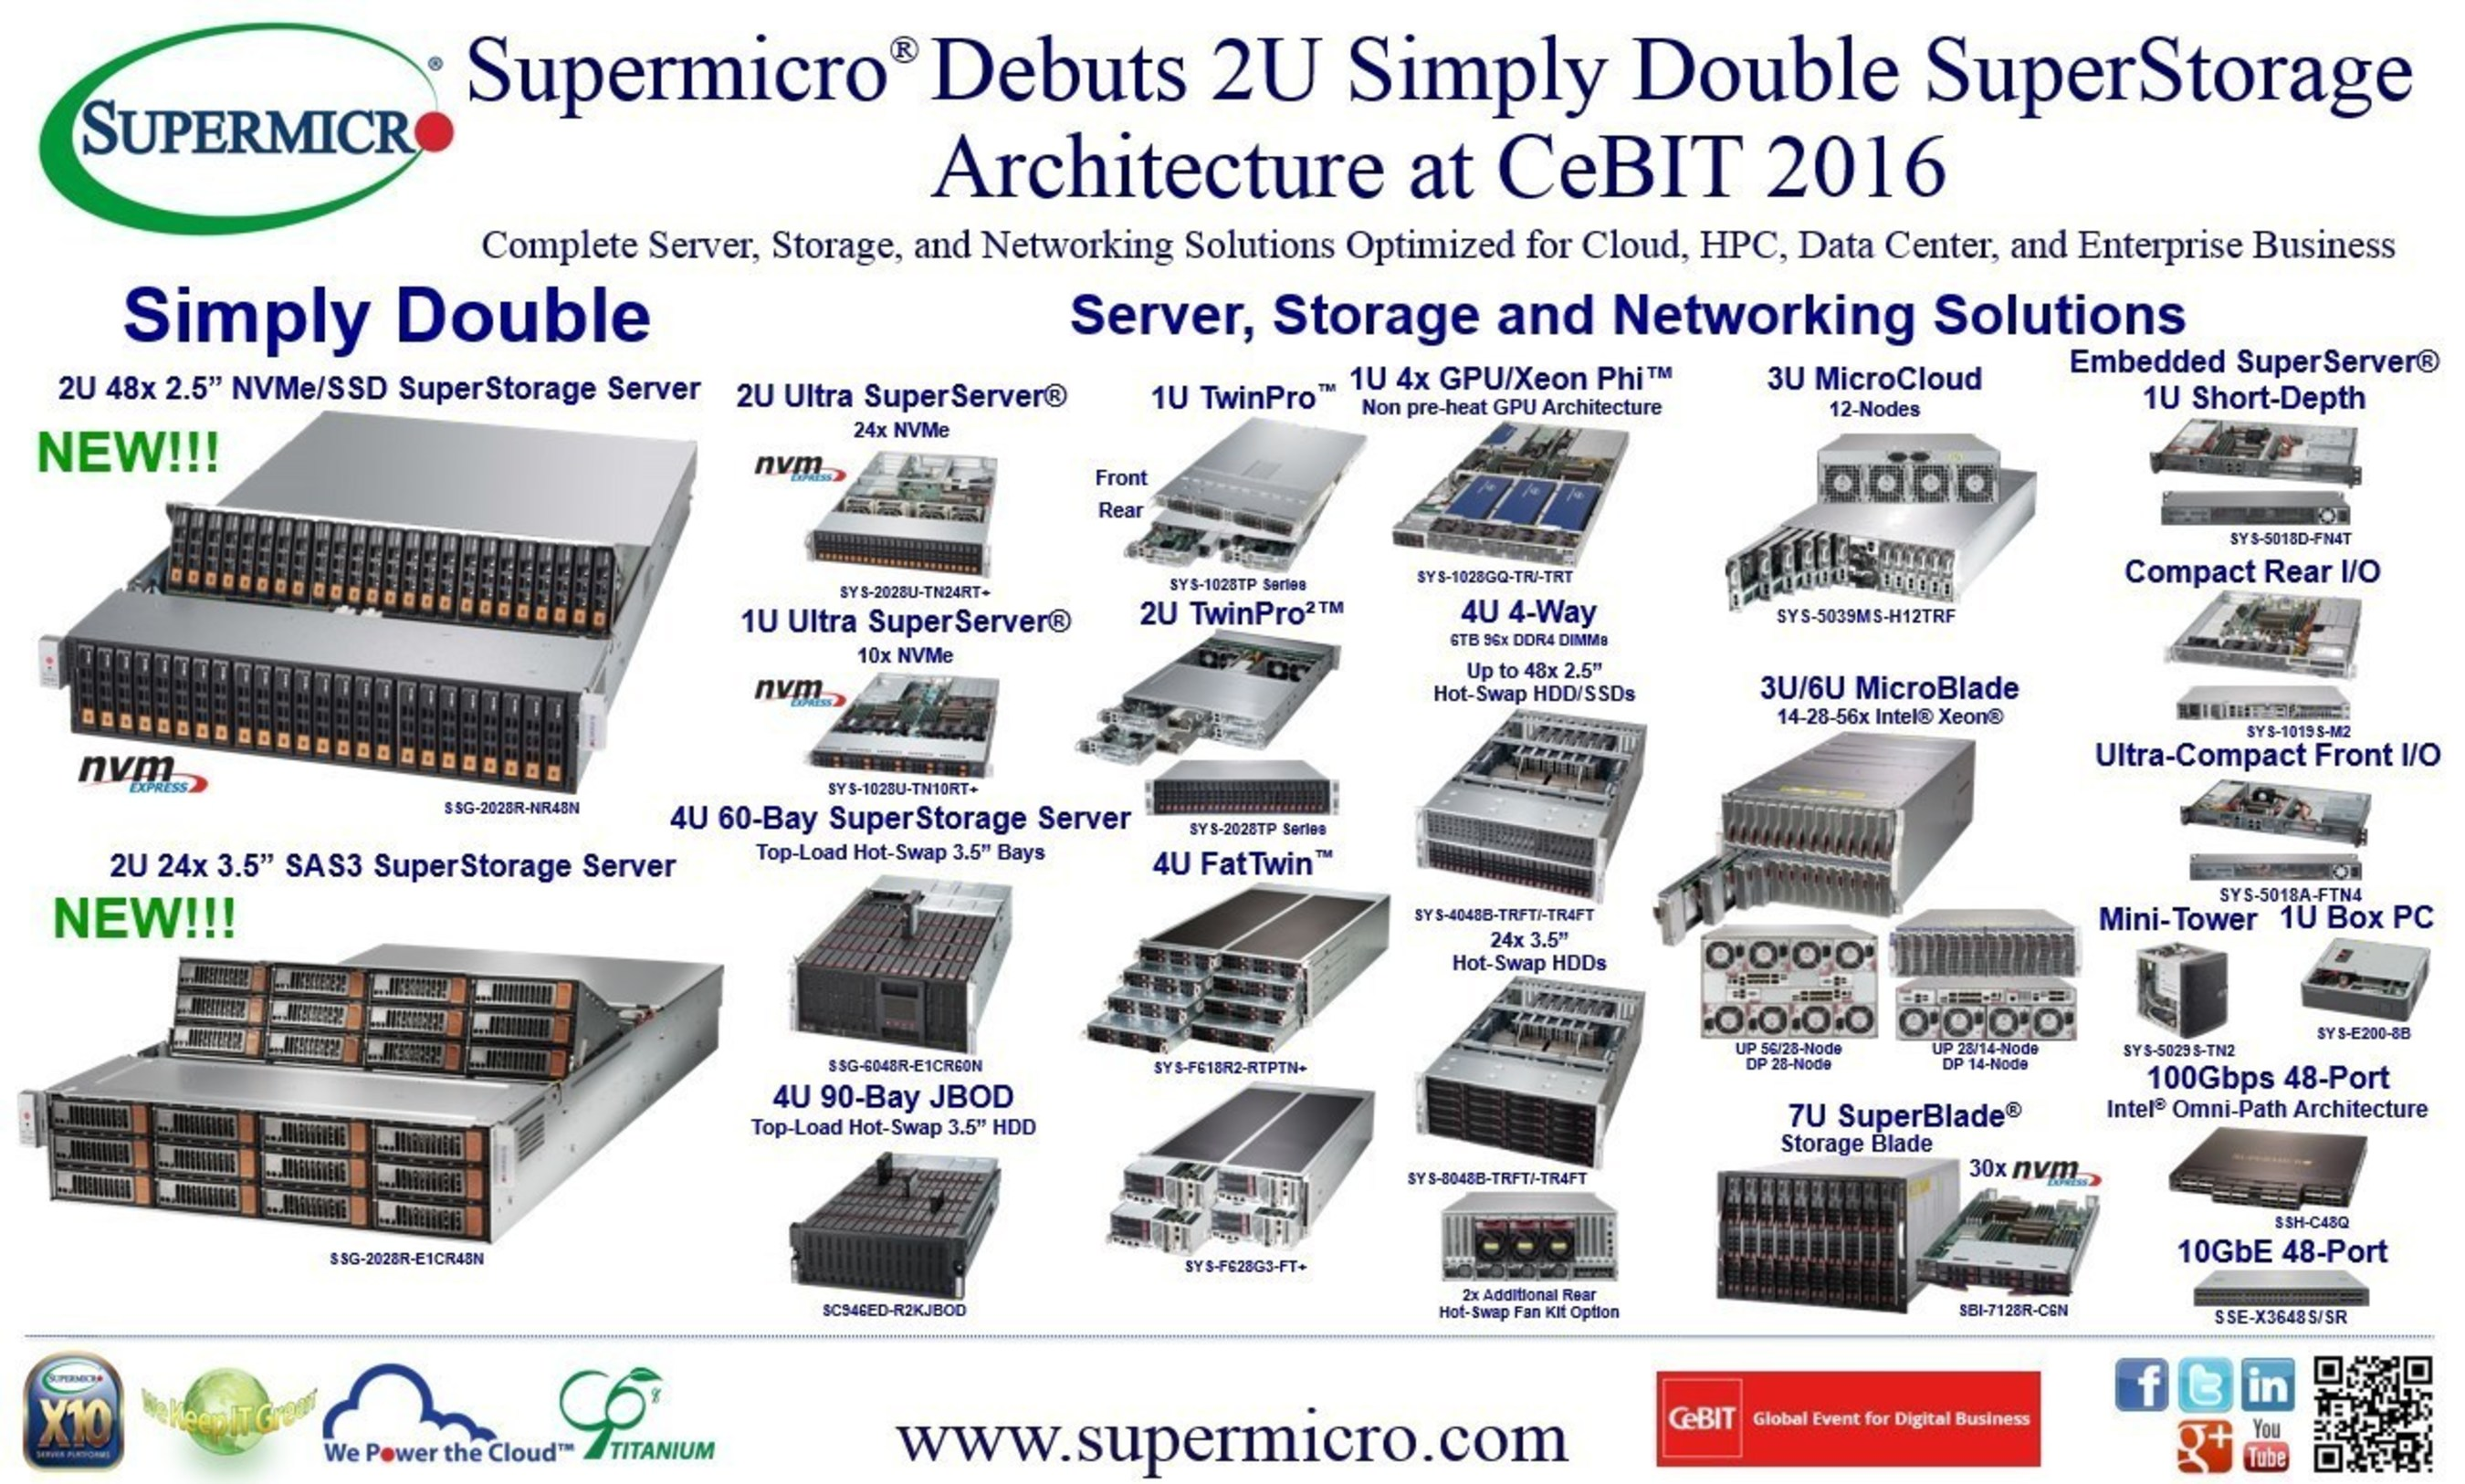 Supermicro(R) Debuts Simply Double Storage Architecture Optimized for Cloud, HPC, Data Center, and Enterprise at CeBIT 2016